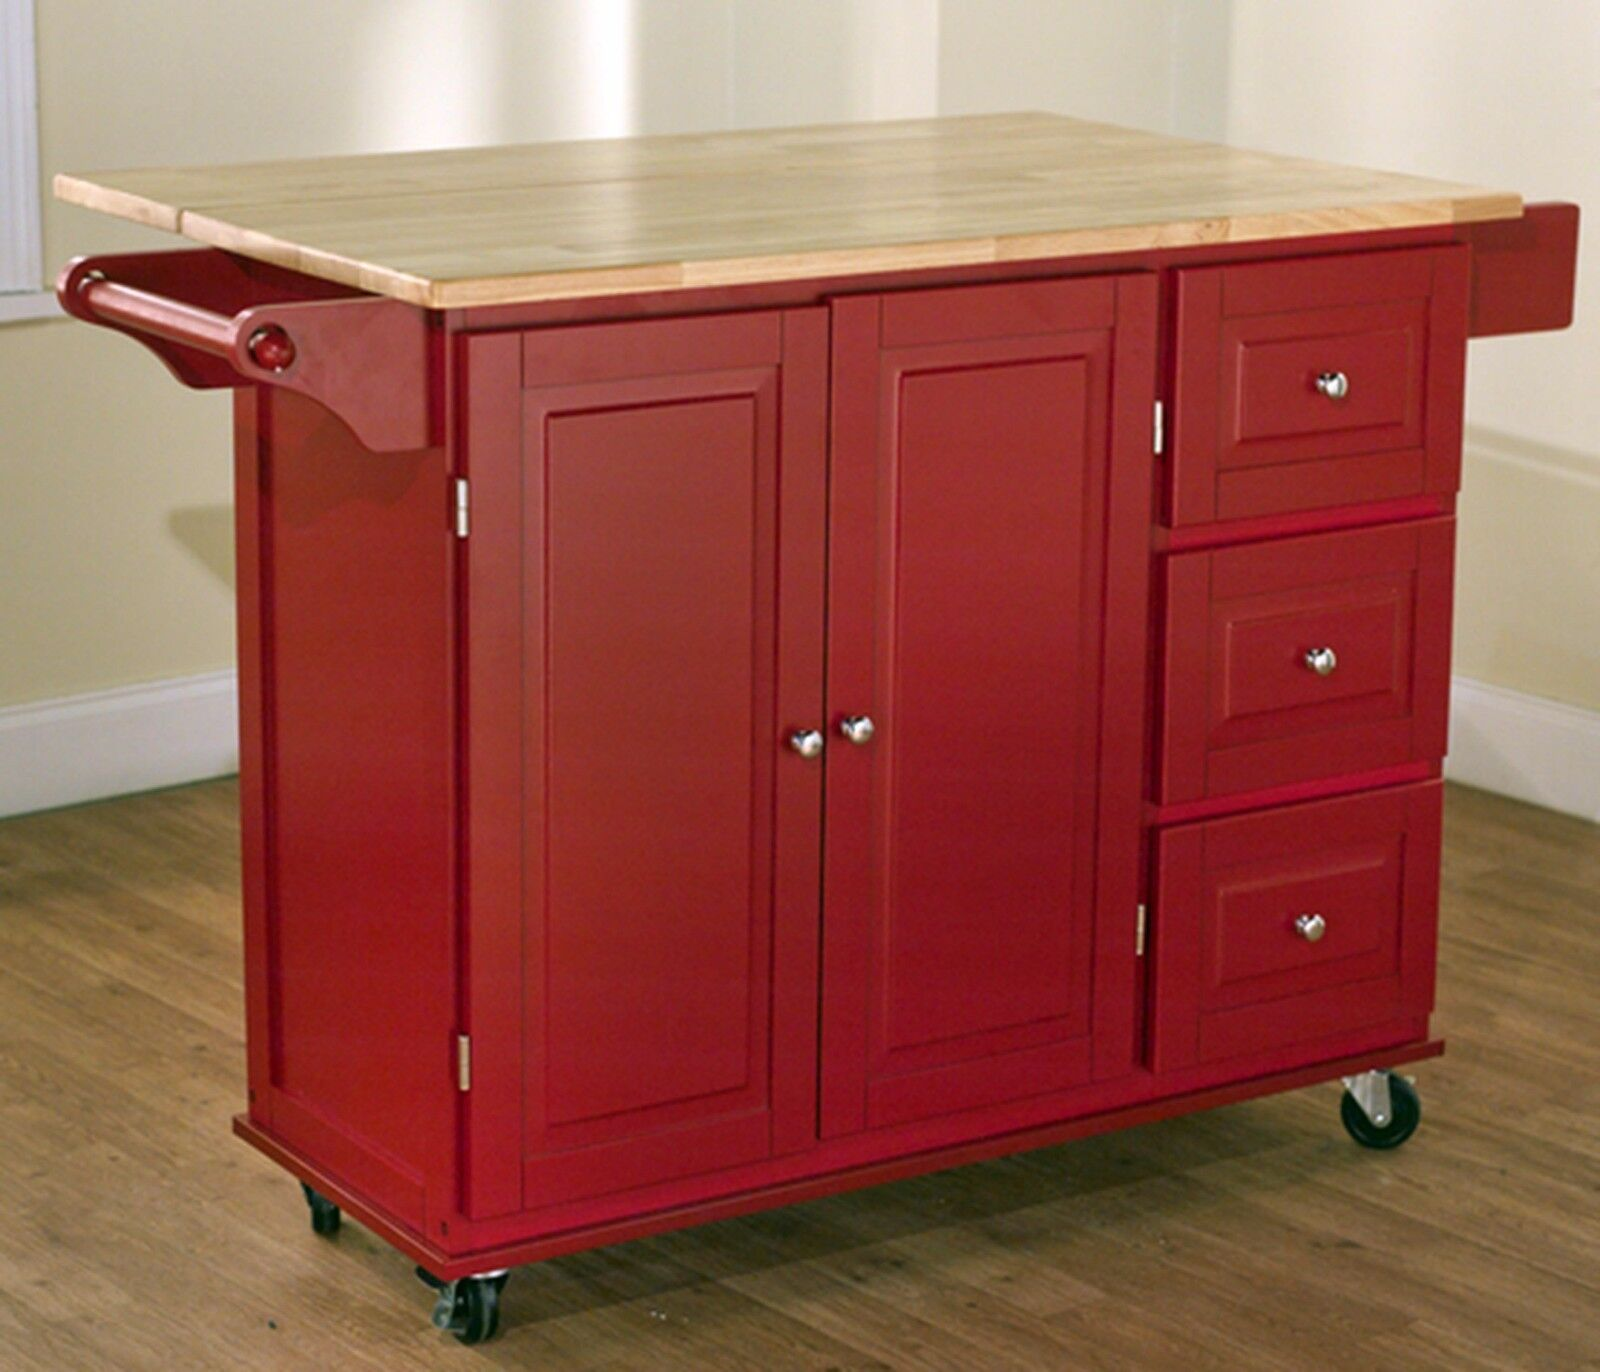 Large Red Kitchen Cart Island Rolling Storage Cabinet Wood